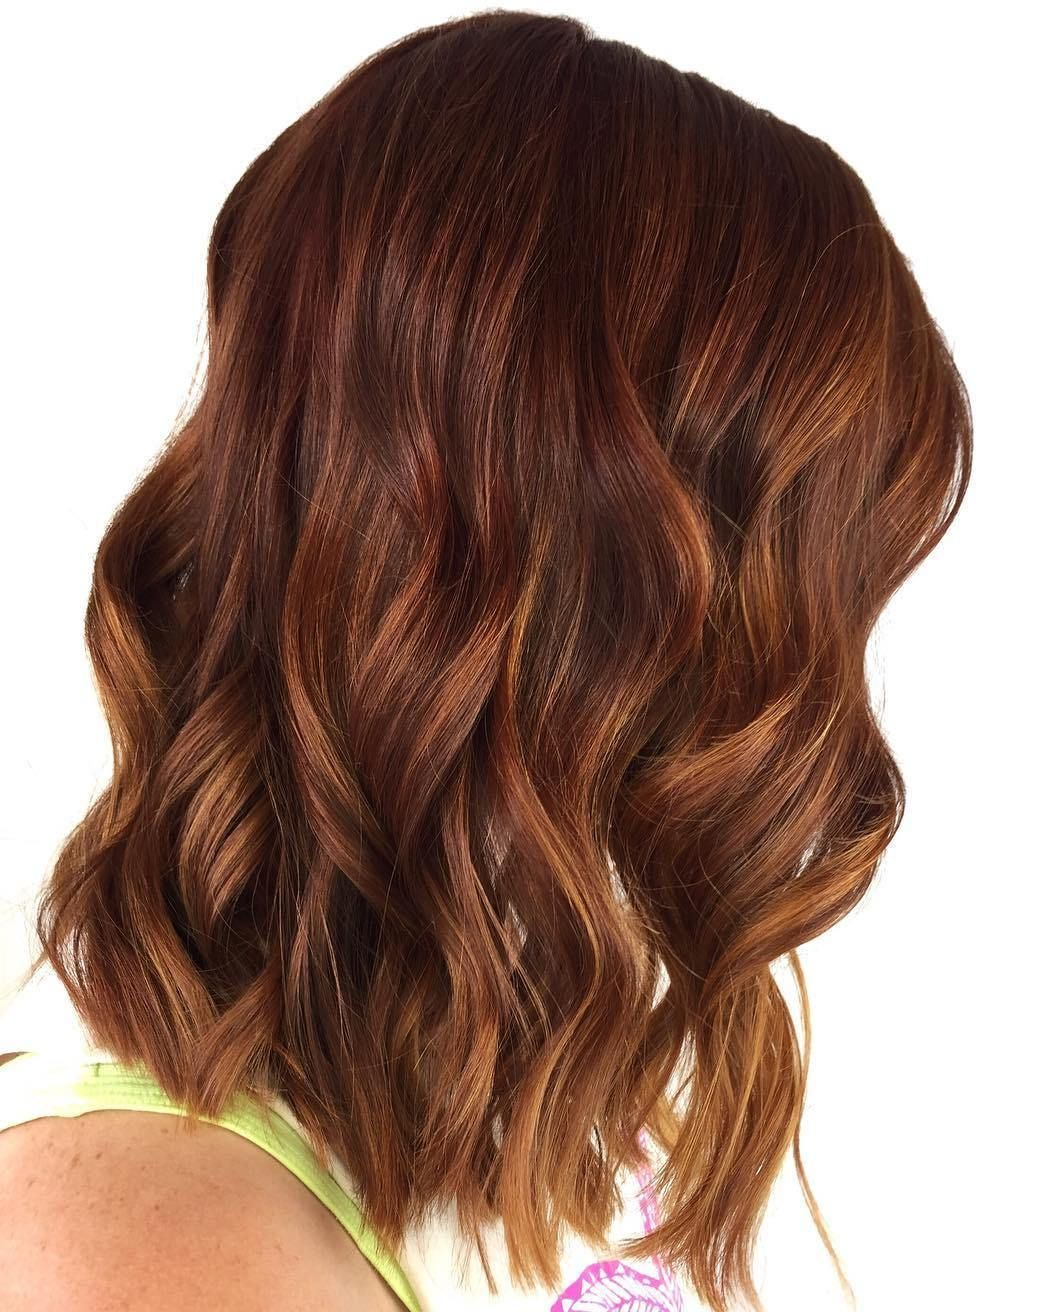 Auburn Hair Color With Highlights Best New Hair Color Check More